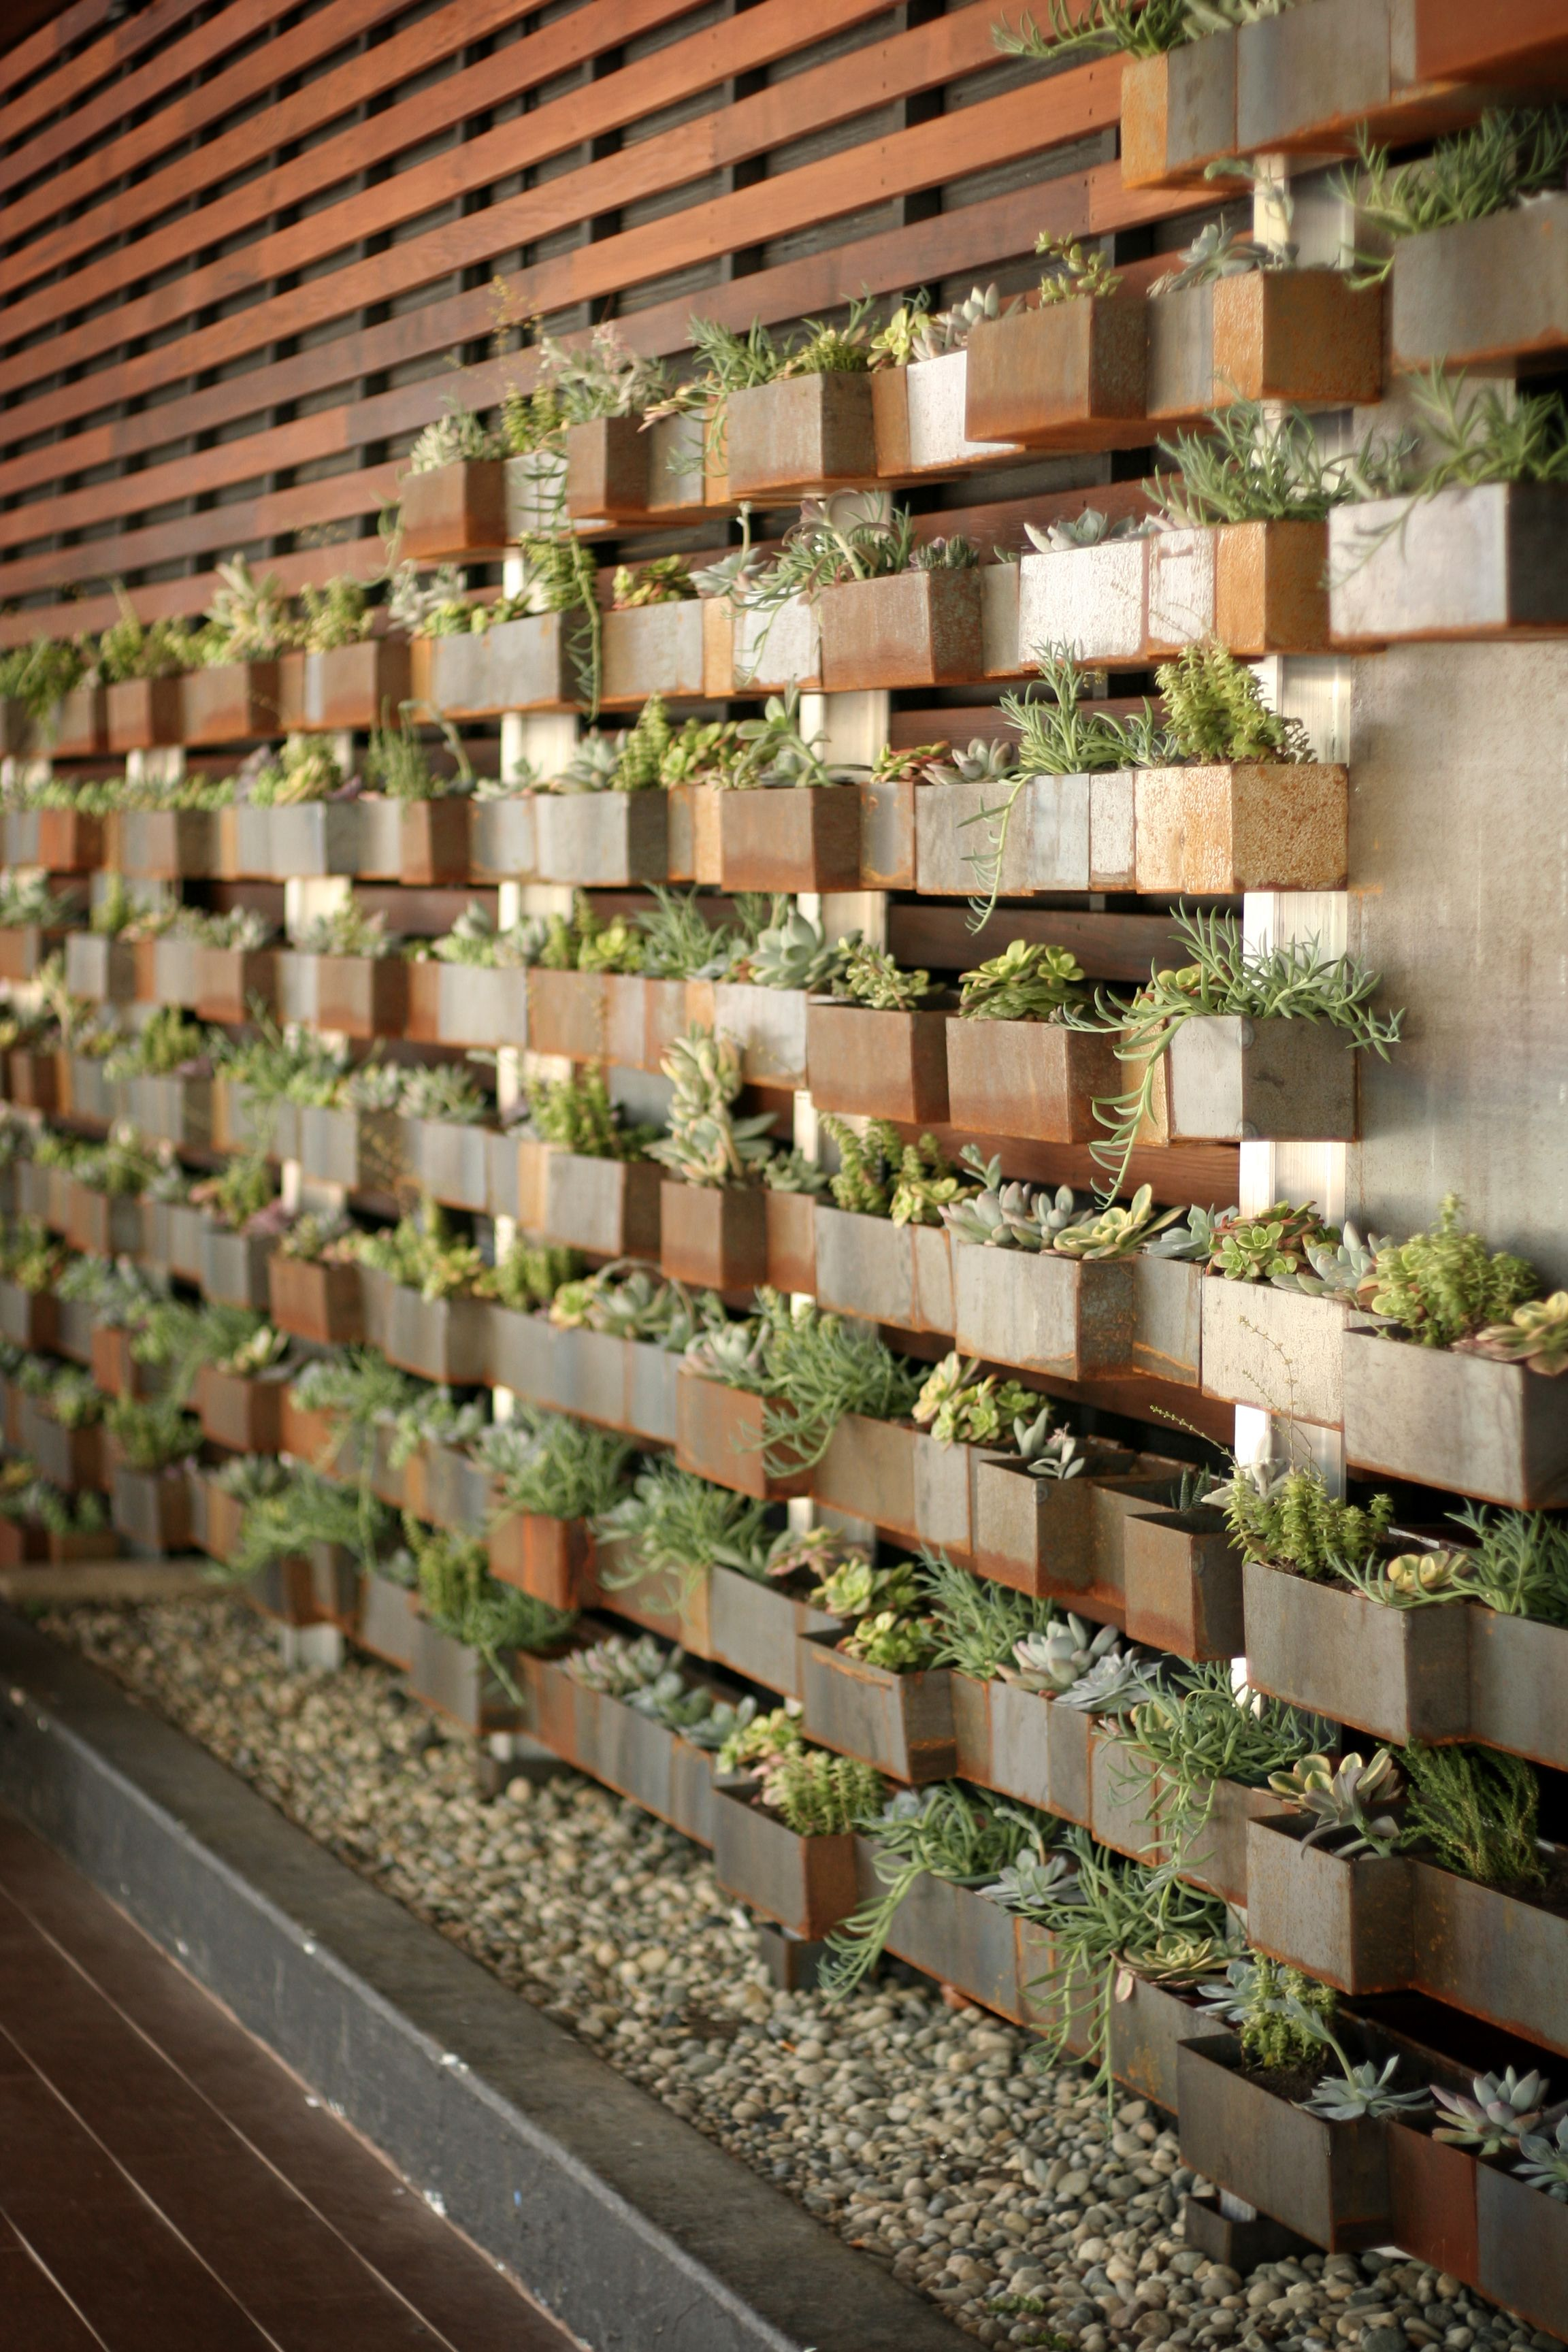 Great Modern And Elegant Vertical Wall Planter Pots Ideas 00004 Italian  Restaurant Decor, Outdoor Restaurant Design